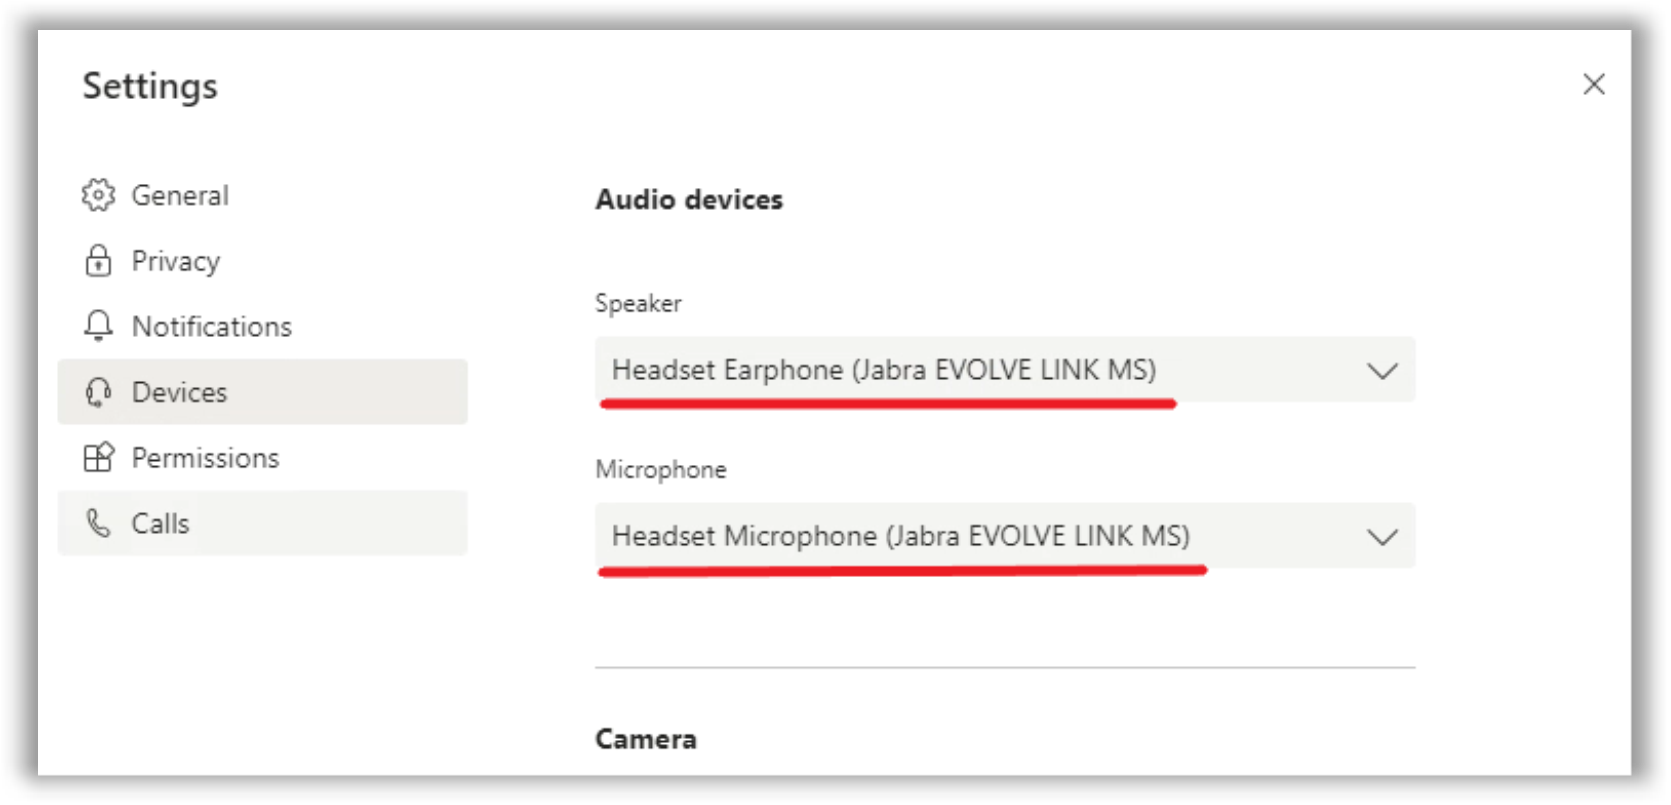 Microsoft Teams Device settings should display the names of audio devices from the client